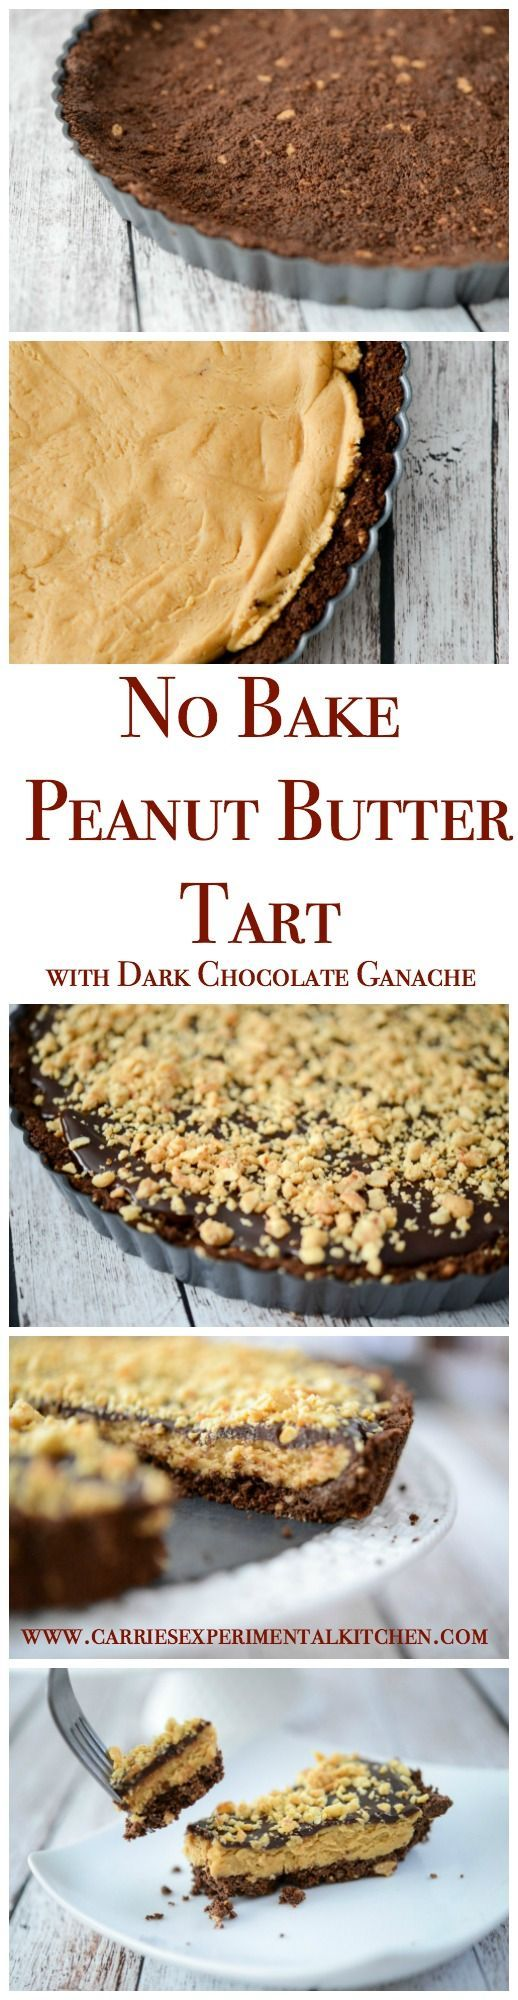 This No Bake Peanut Butter Tart with Dark Chocolate Ganache is so rich and decadent it's perfect for holidays or special occasions.